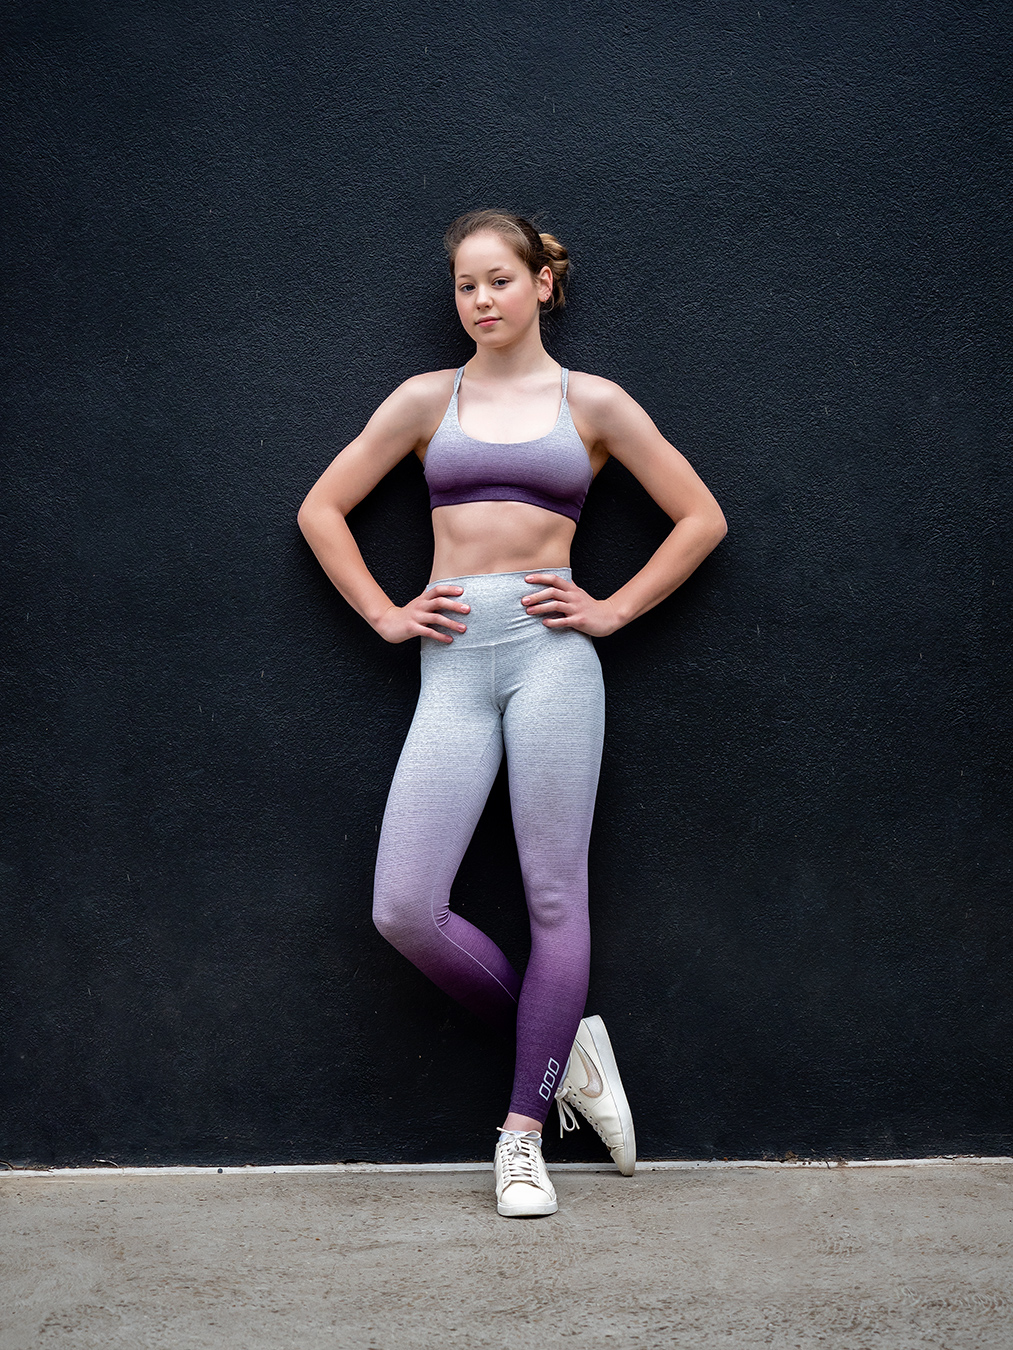 Melbournes Elite Gymnast Alyssa sanding bold legs crossed and hands on her hips